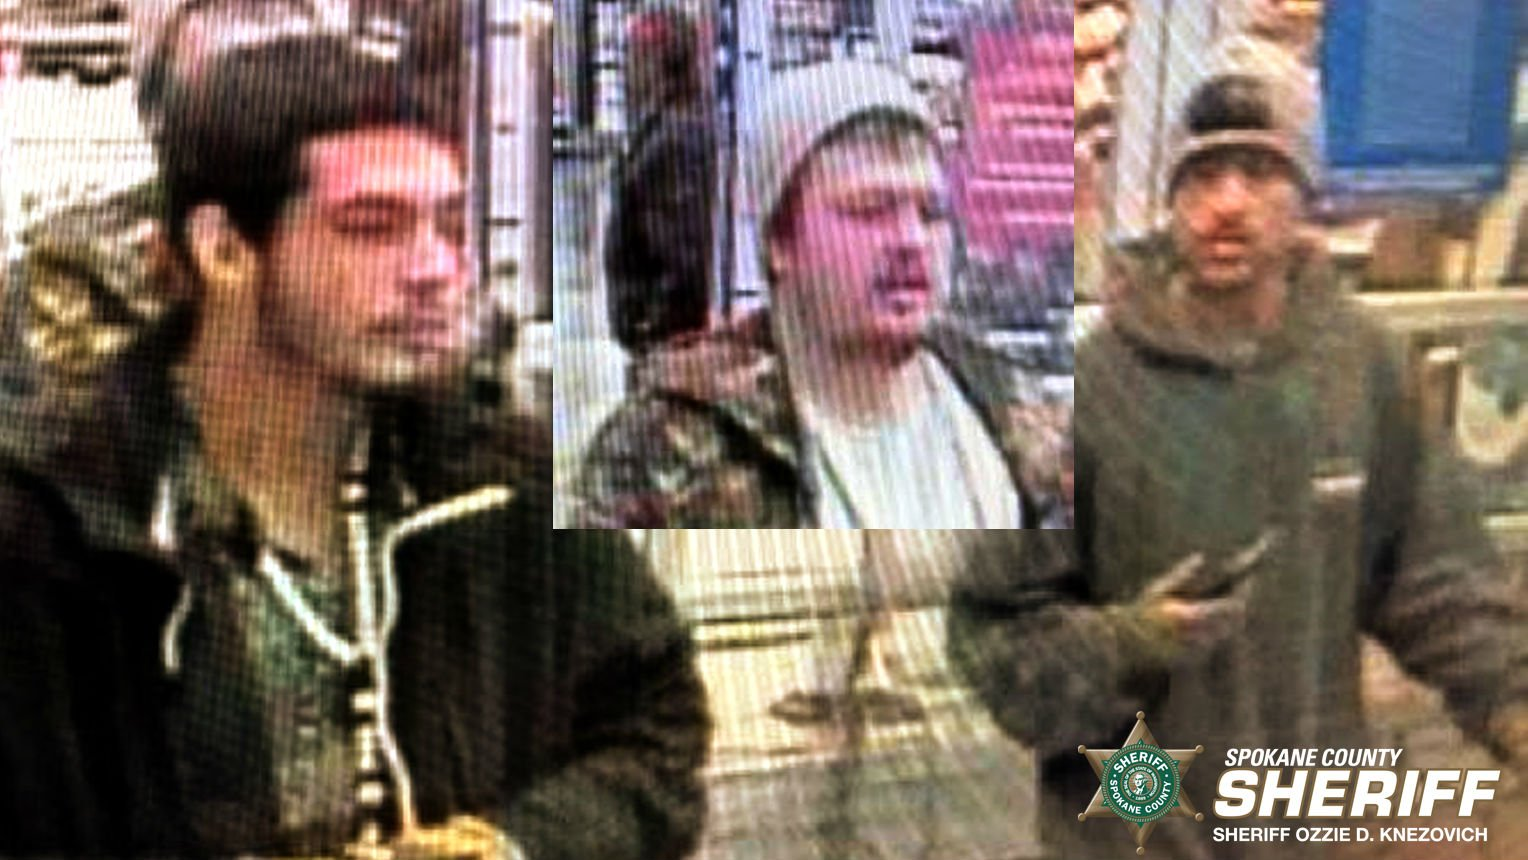 If you can help identify any of the male suspects in the photos, you are asked to call ITF Detective Jennifer Sutter at 509-477-3250, reference #10152259.